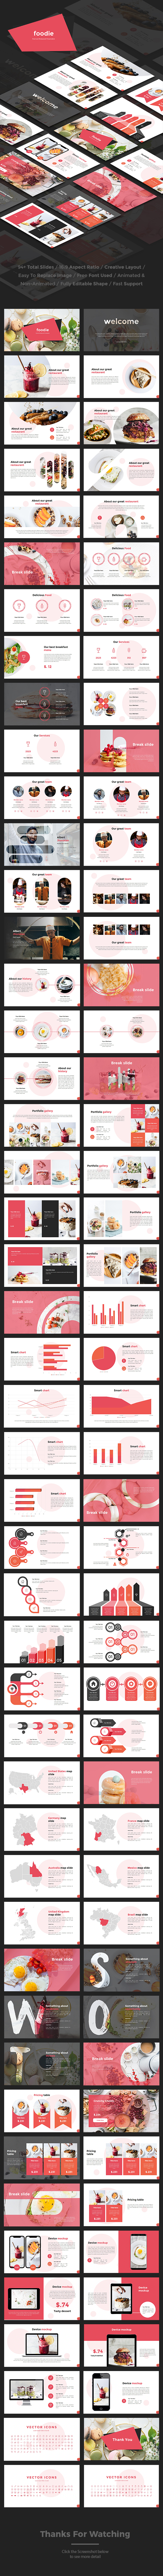 Foodie food and restaurant powerpoint template by pixelbob foodie food and restaurant powerpoint template business powerpoint templates toneelgroepblik Images